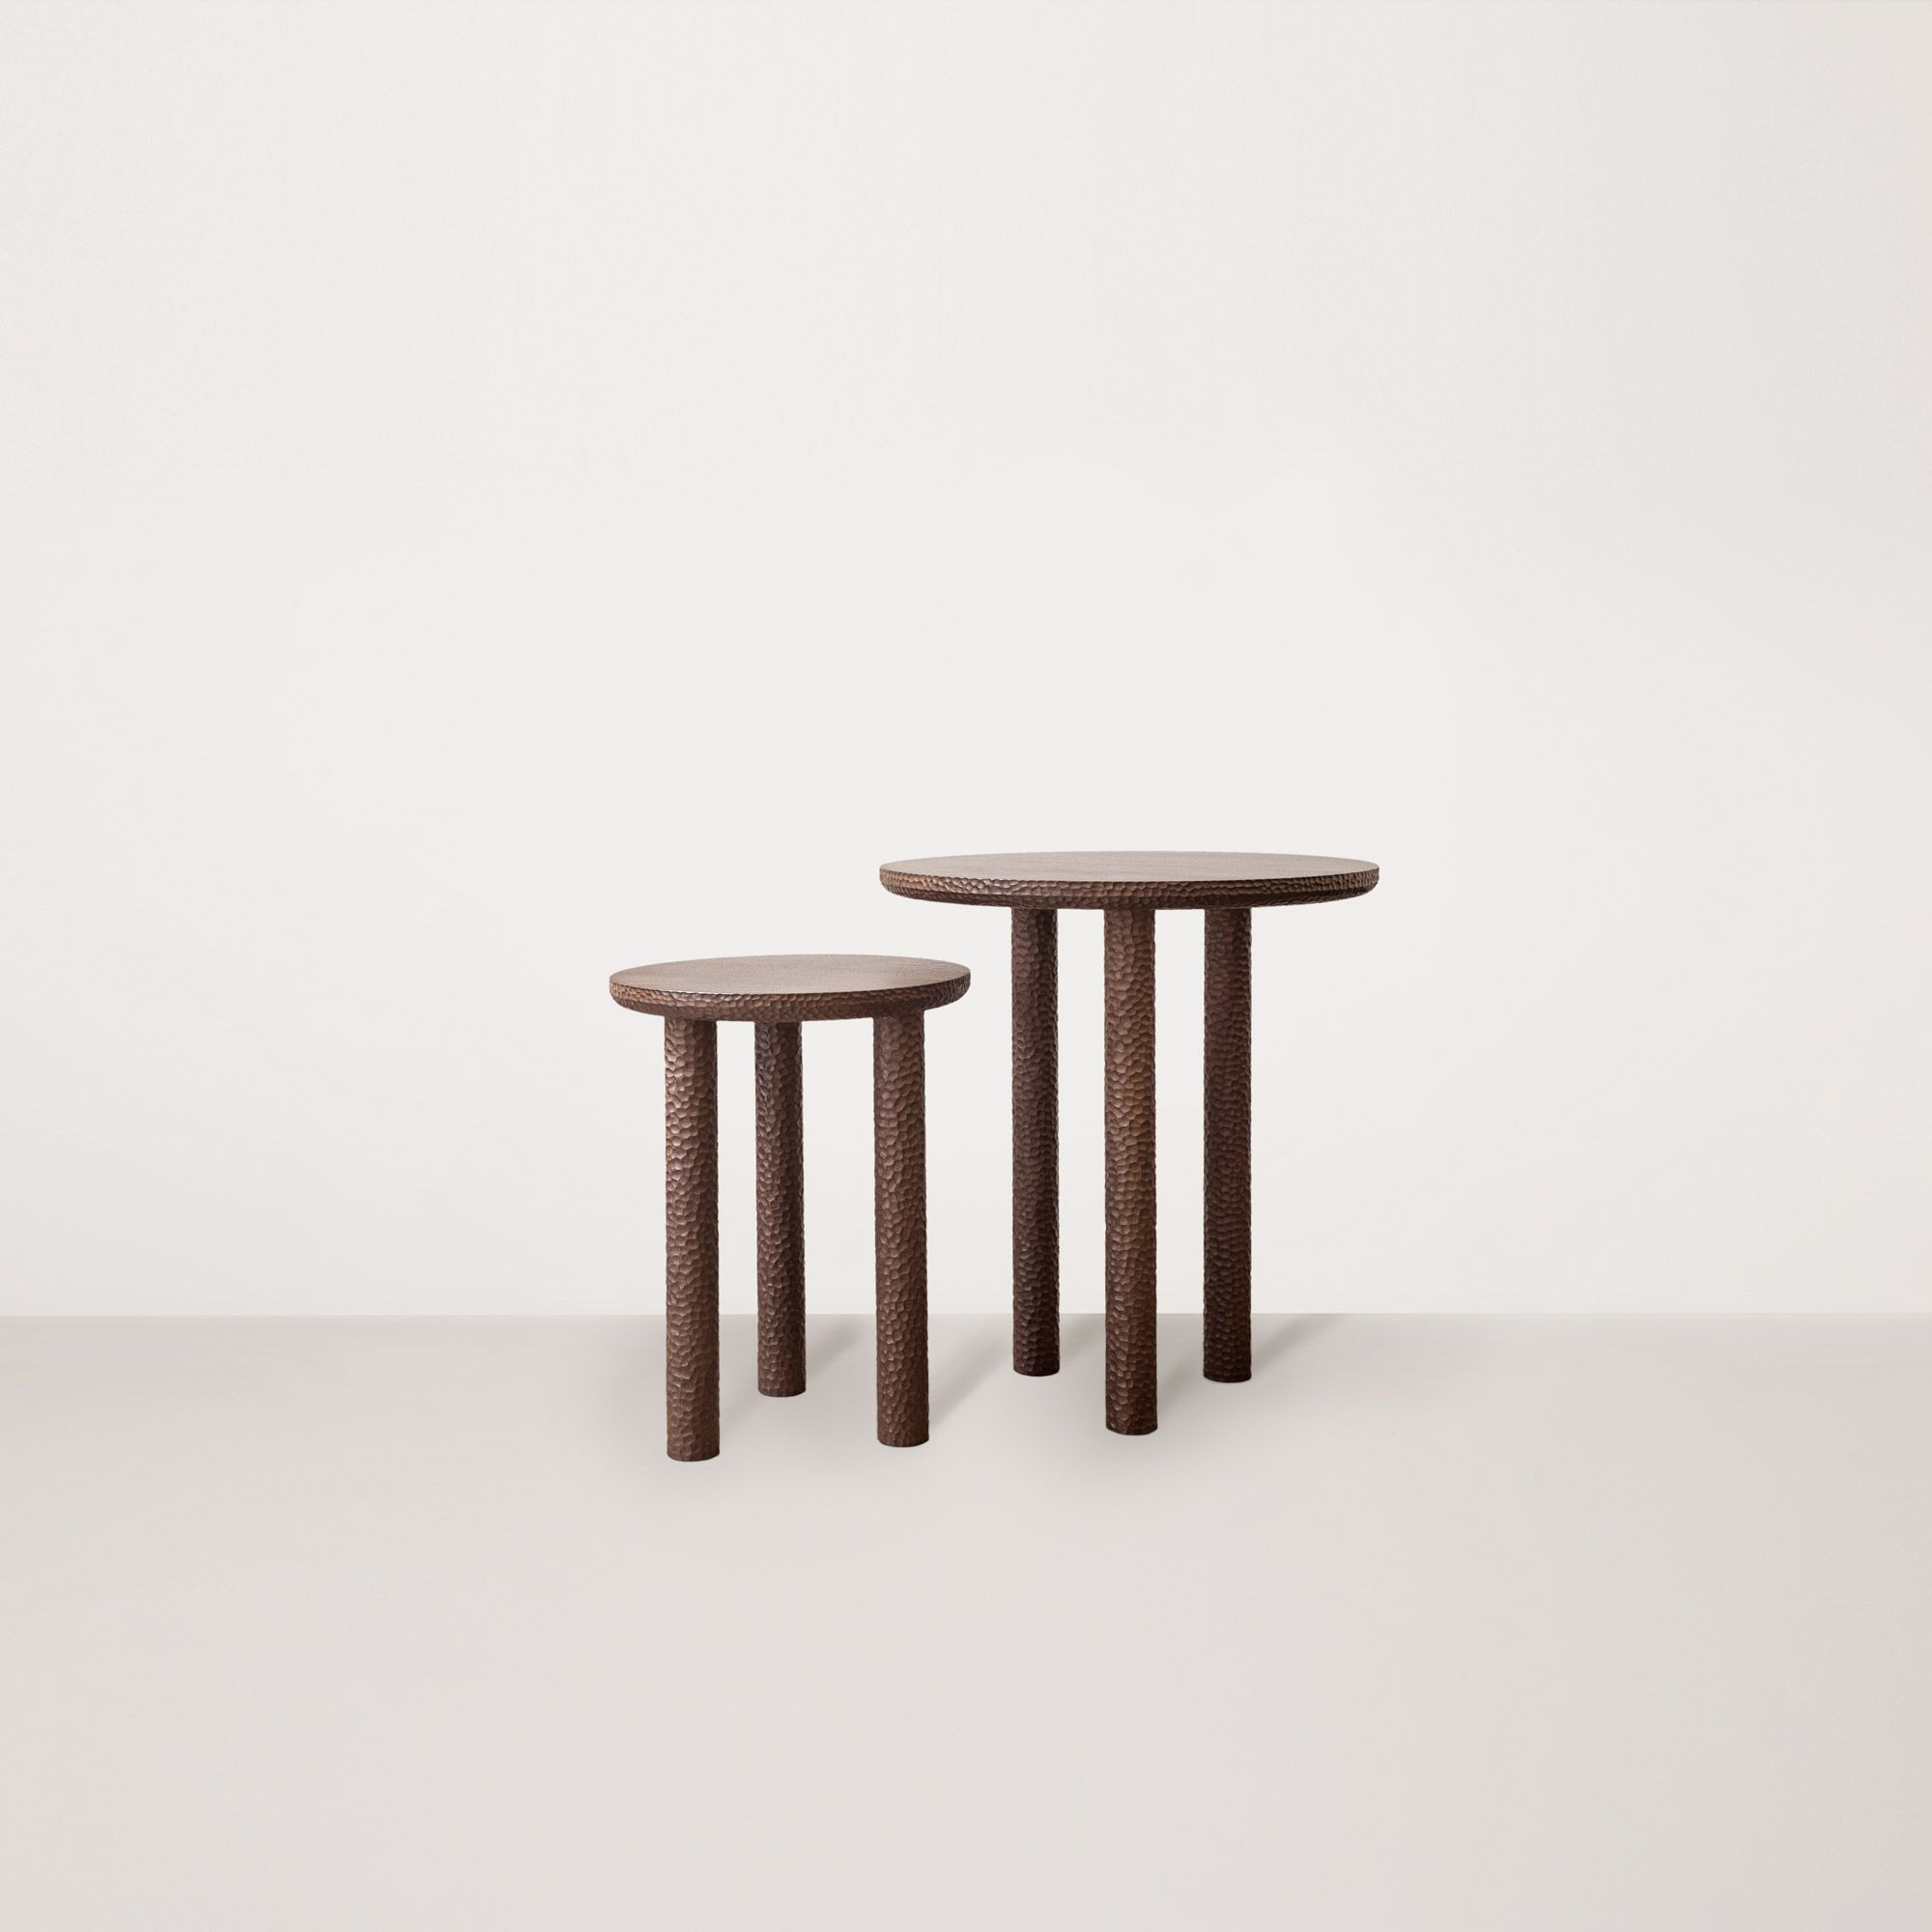 Rosae side table by Goula/Figuera